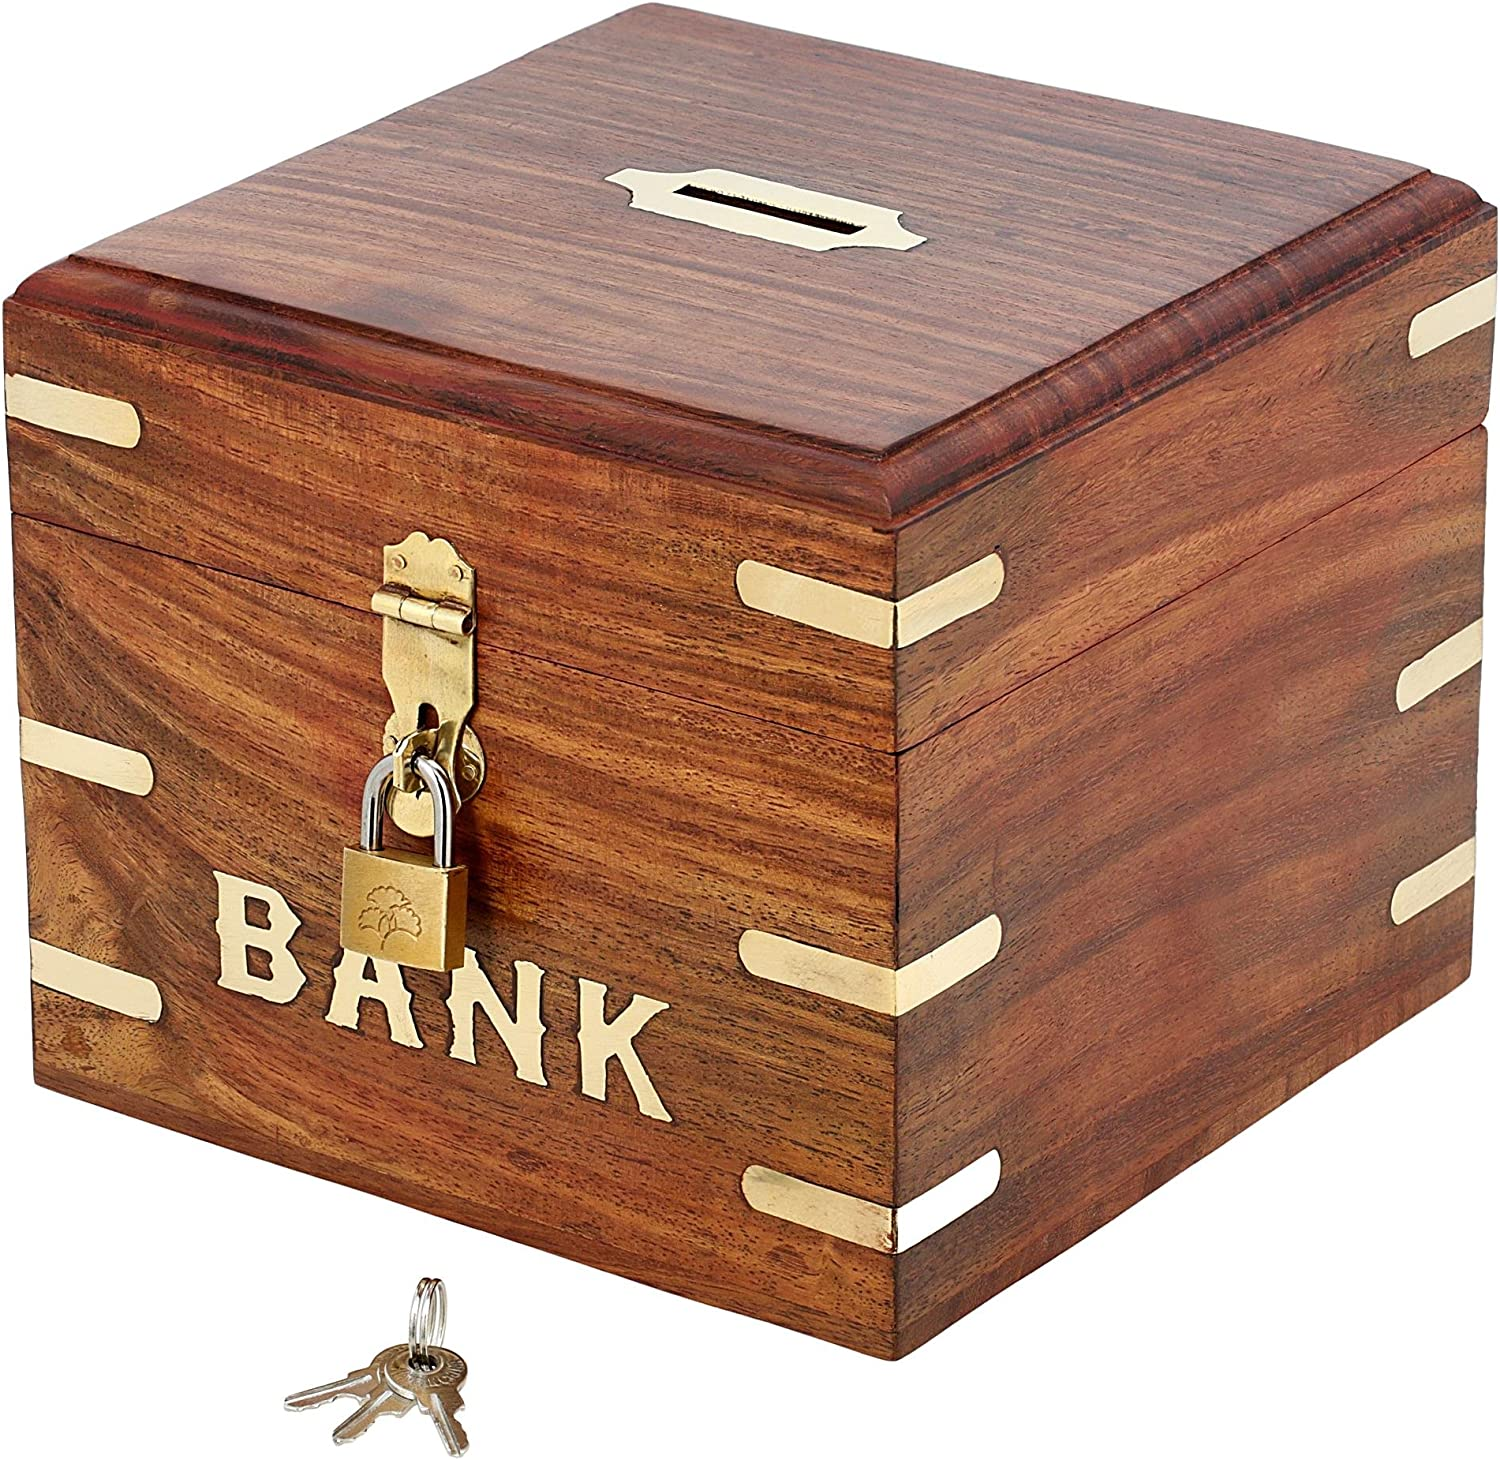 Ajuny Indian Vinatge Wooden Square Piggy Bank For Boys Girls and Any Age Size 6x6x6 Inches